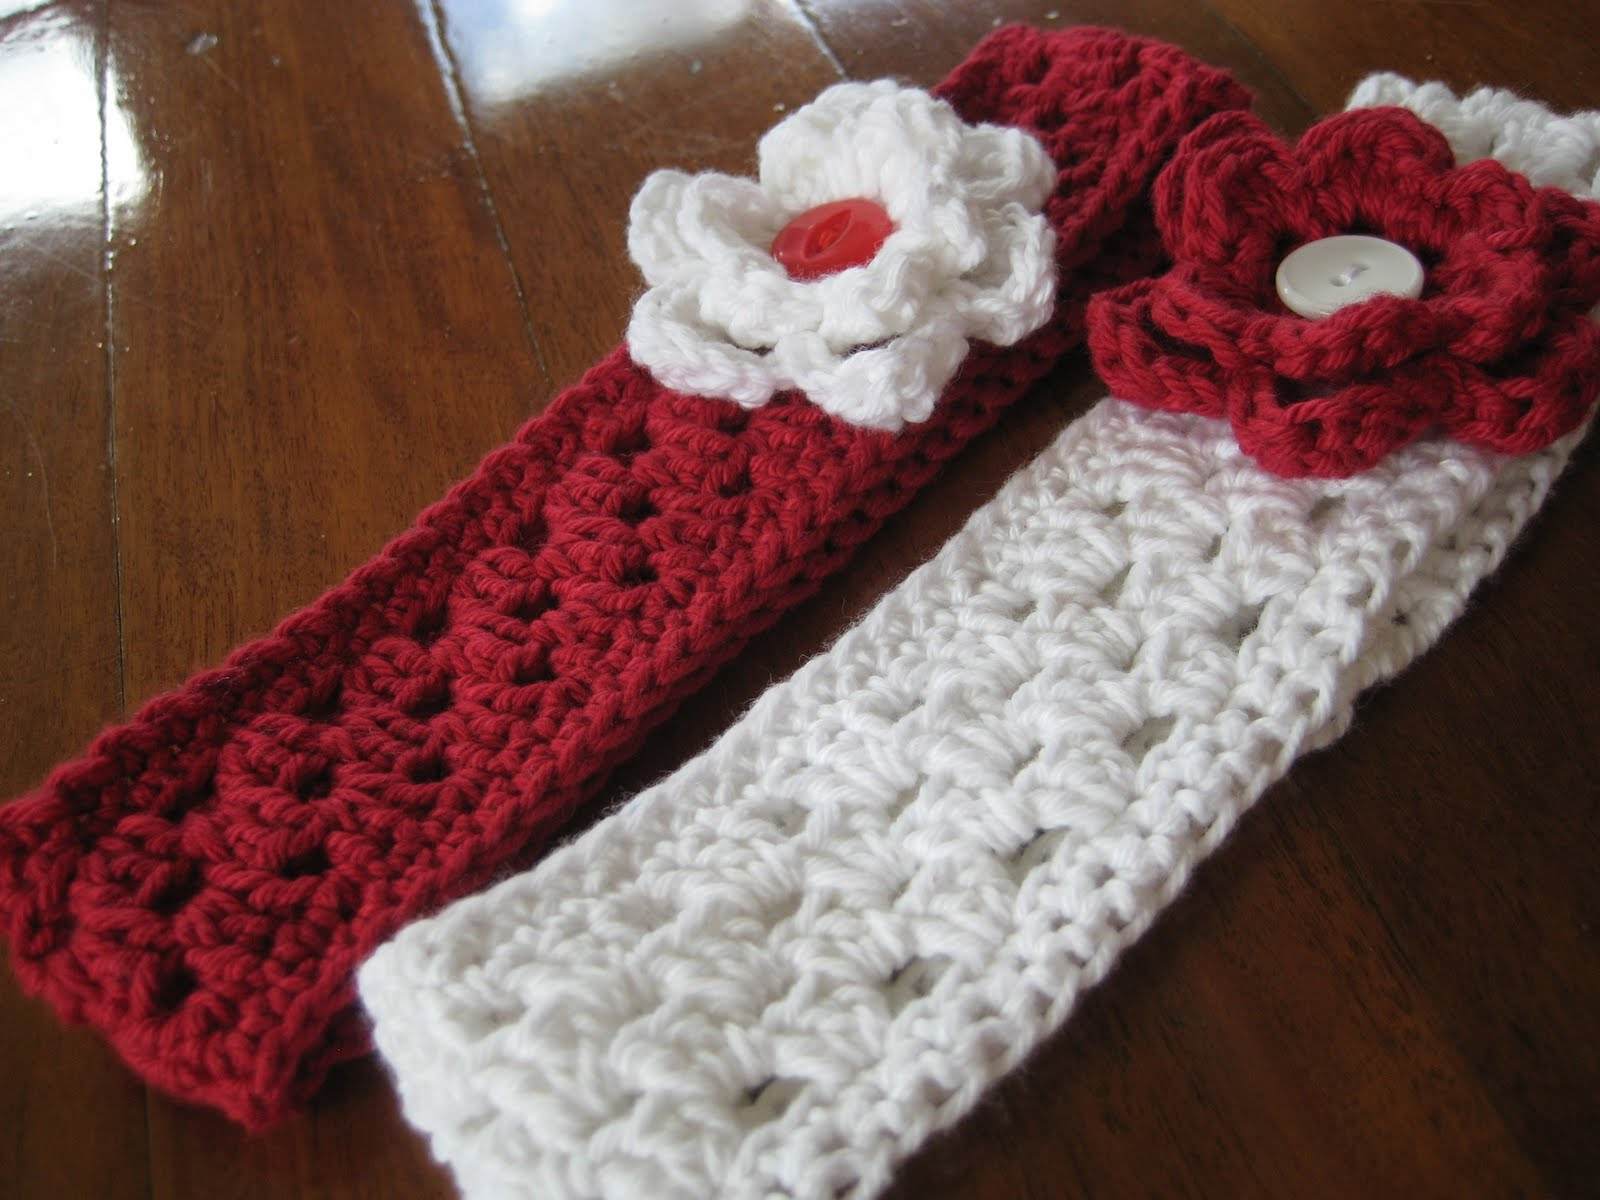 Never Knew: More Crochet Gifts